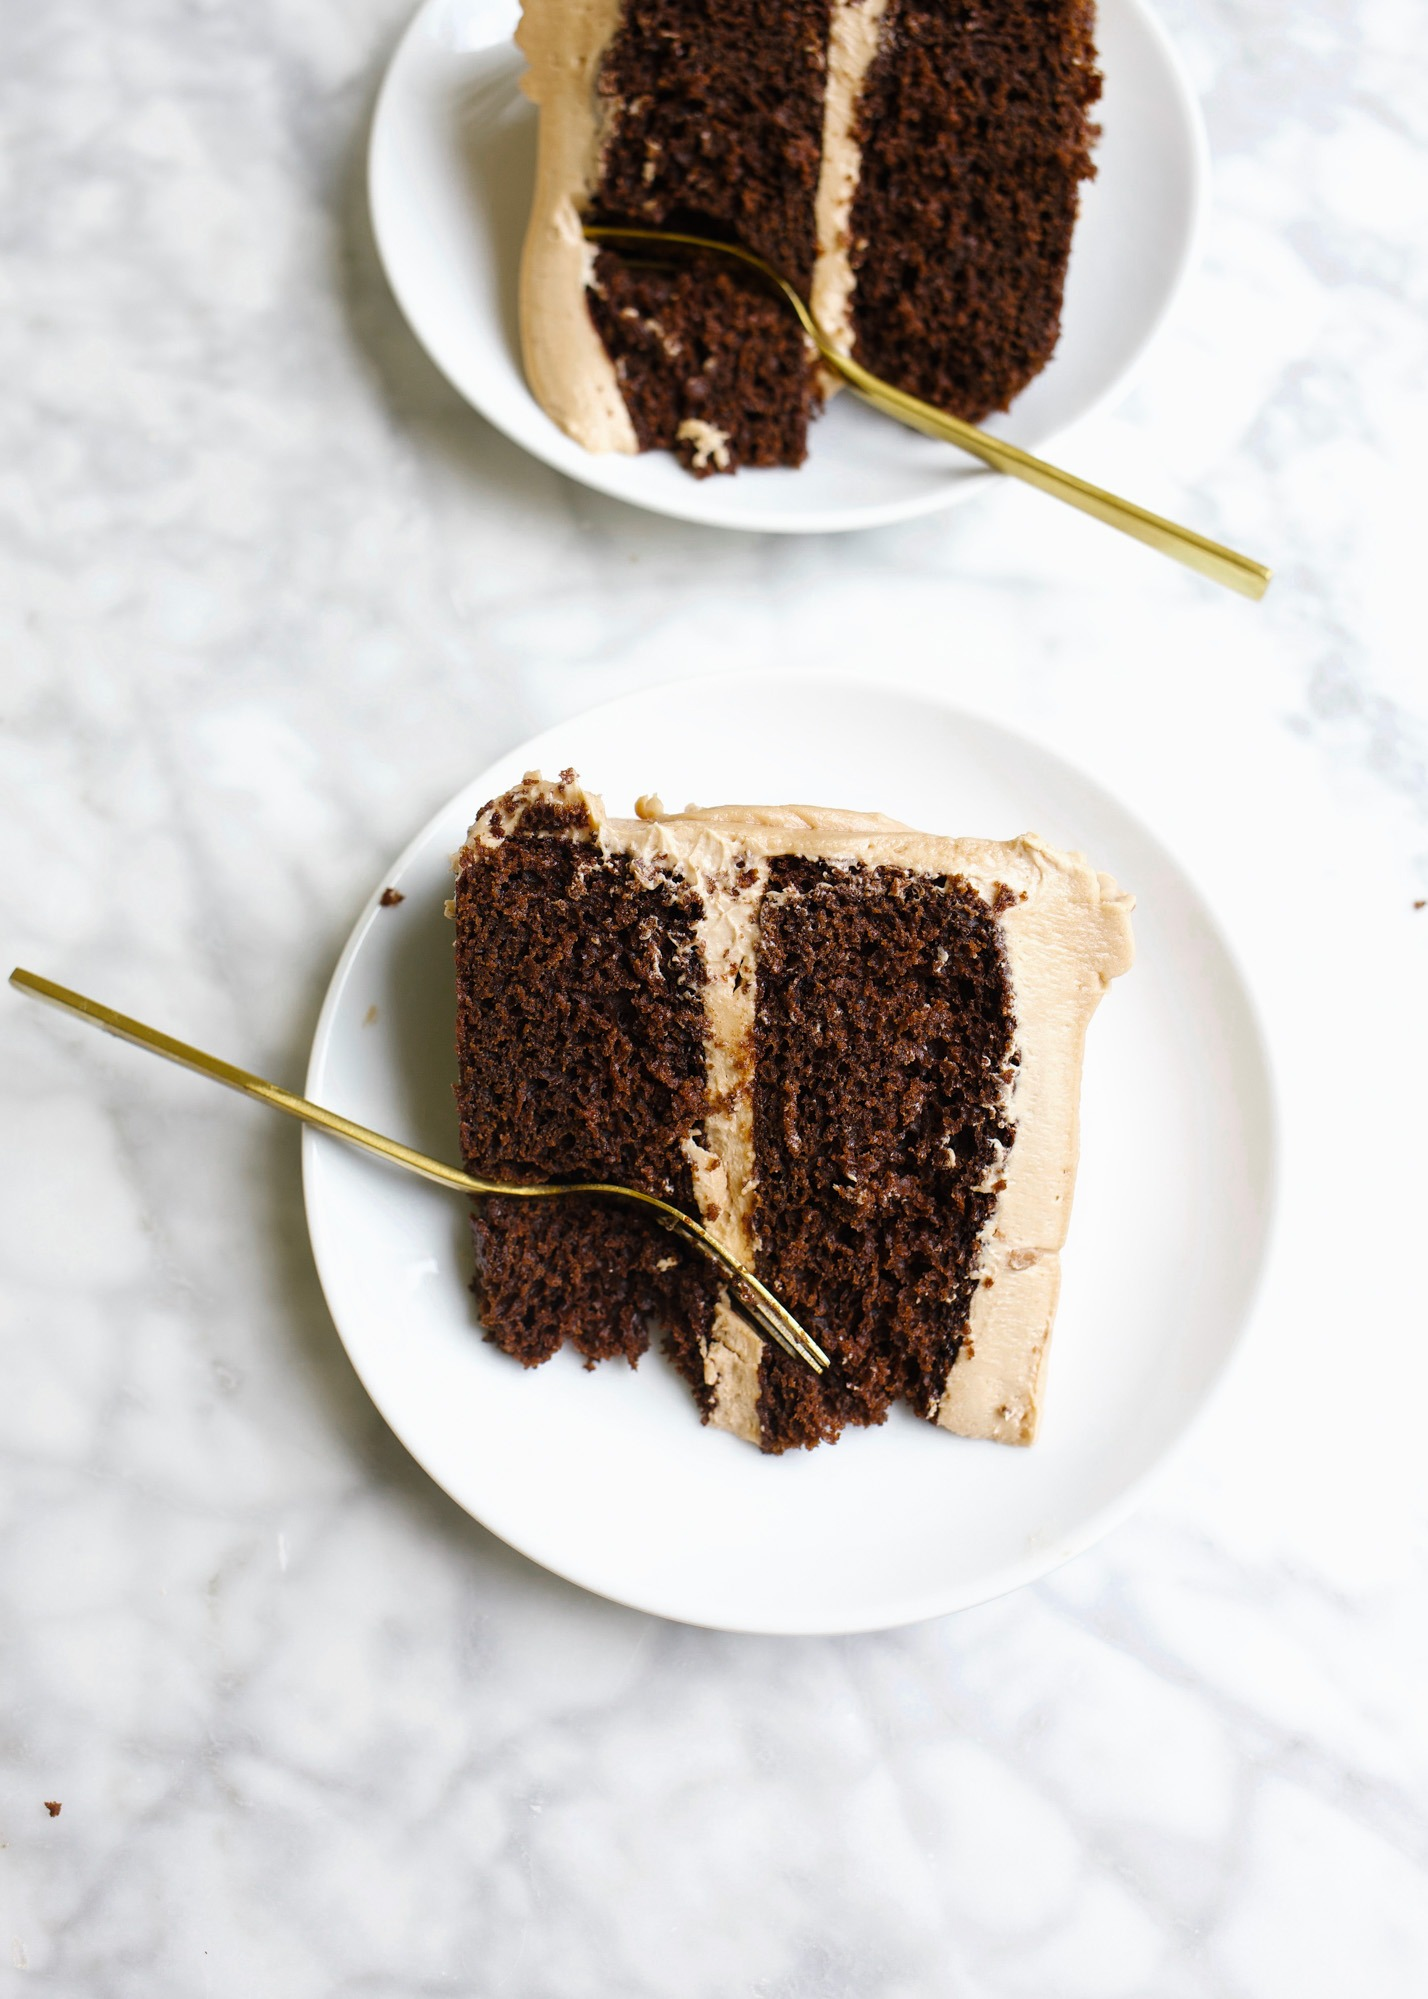 One-Bowl Chocolate Cake by Wood and Spoon blog. This is a simple fluffy cocoa powder layer cake topped with a fluffy whipped milk chocolate buttercream. If you need a go to chocolate cake recipe, this is the easiest one for beginners to try at home! Learn how simple chocolate layer cake is at home. Recipe from thewoodandspoon.com by Kate Wood